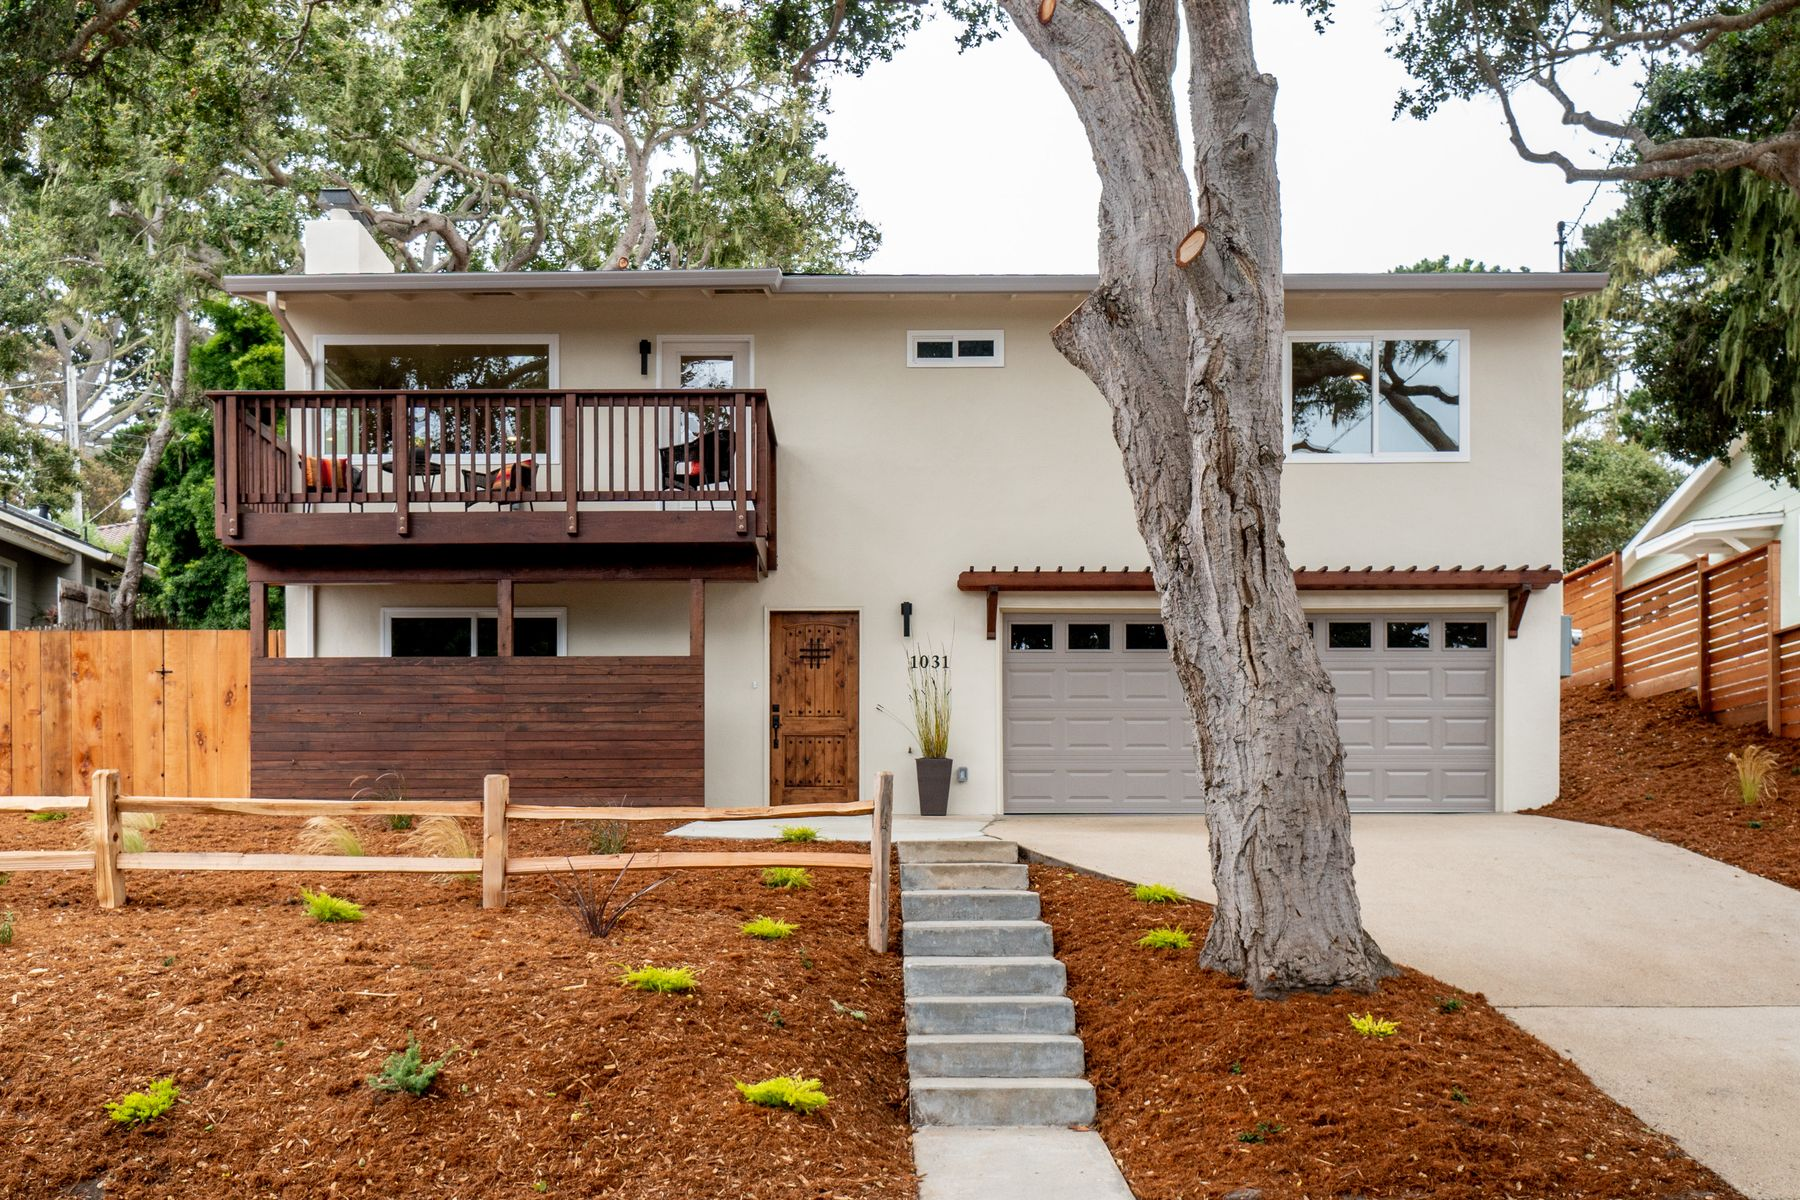 Single Family Homes for Sale at Newly Remodeled Beach Tract Home 1031 Jewell Avenue Pacific Grove, California 93950 United States